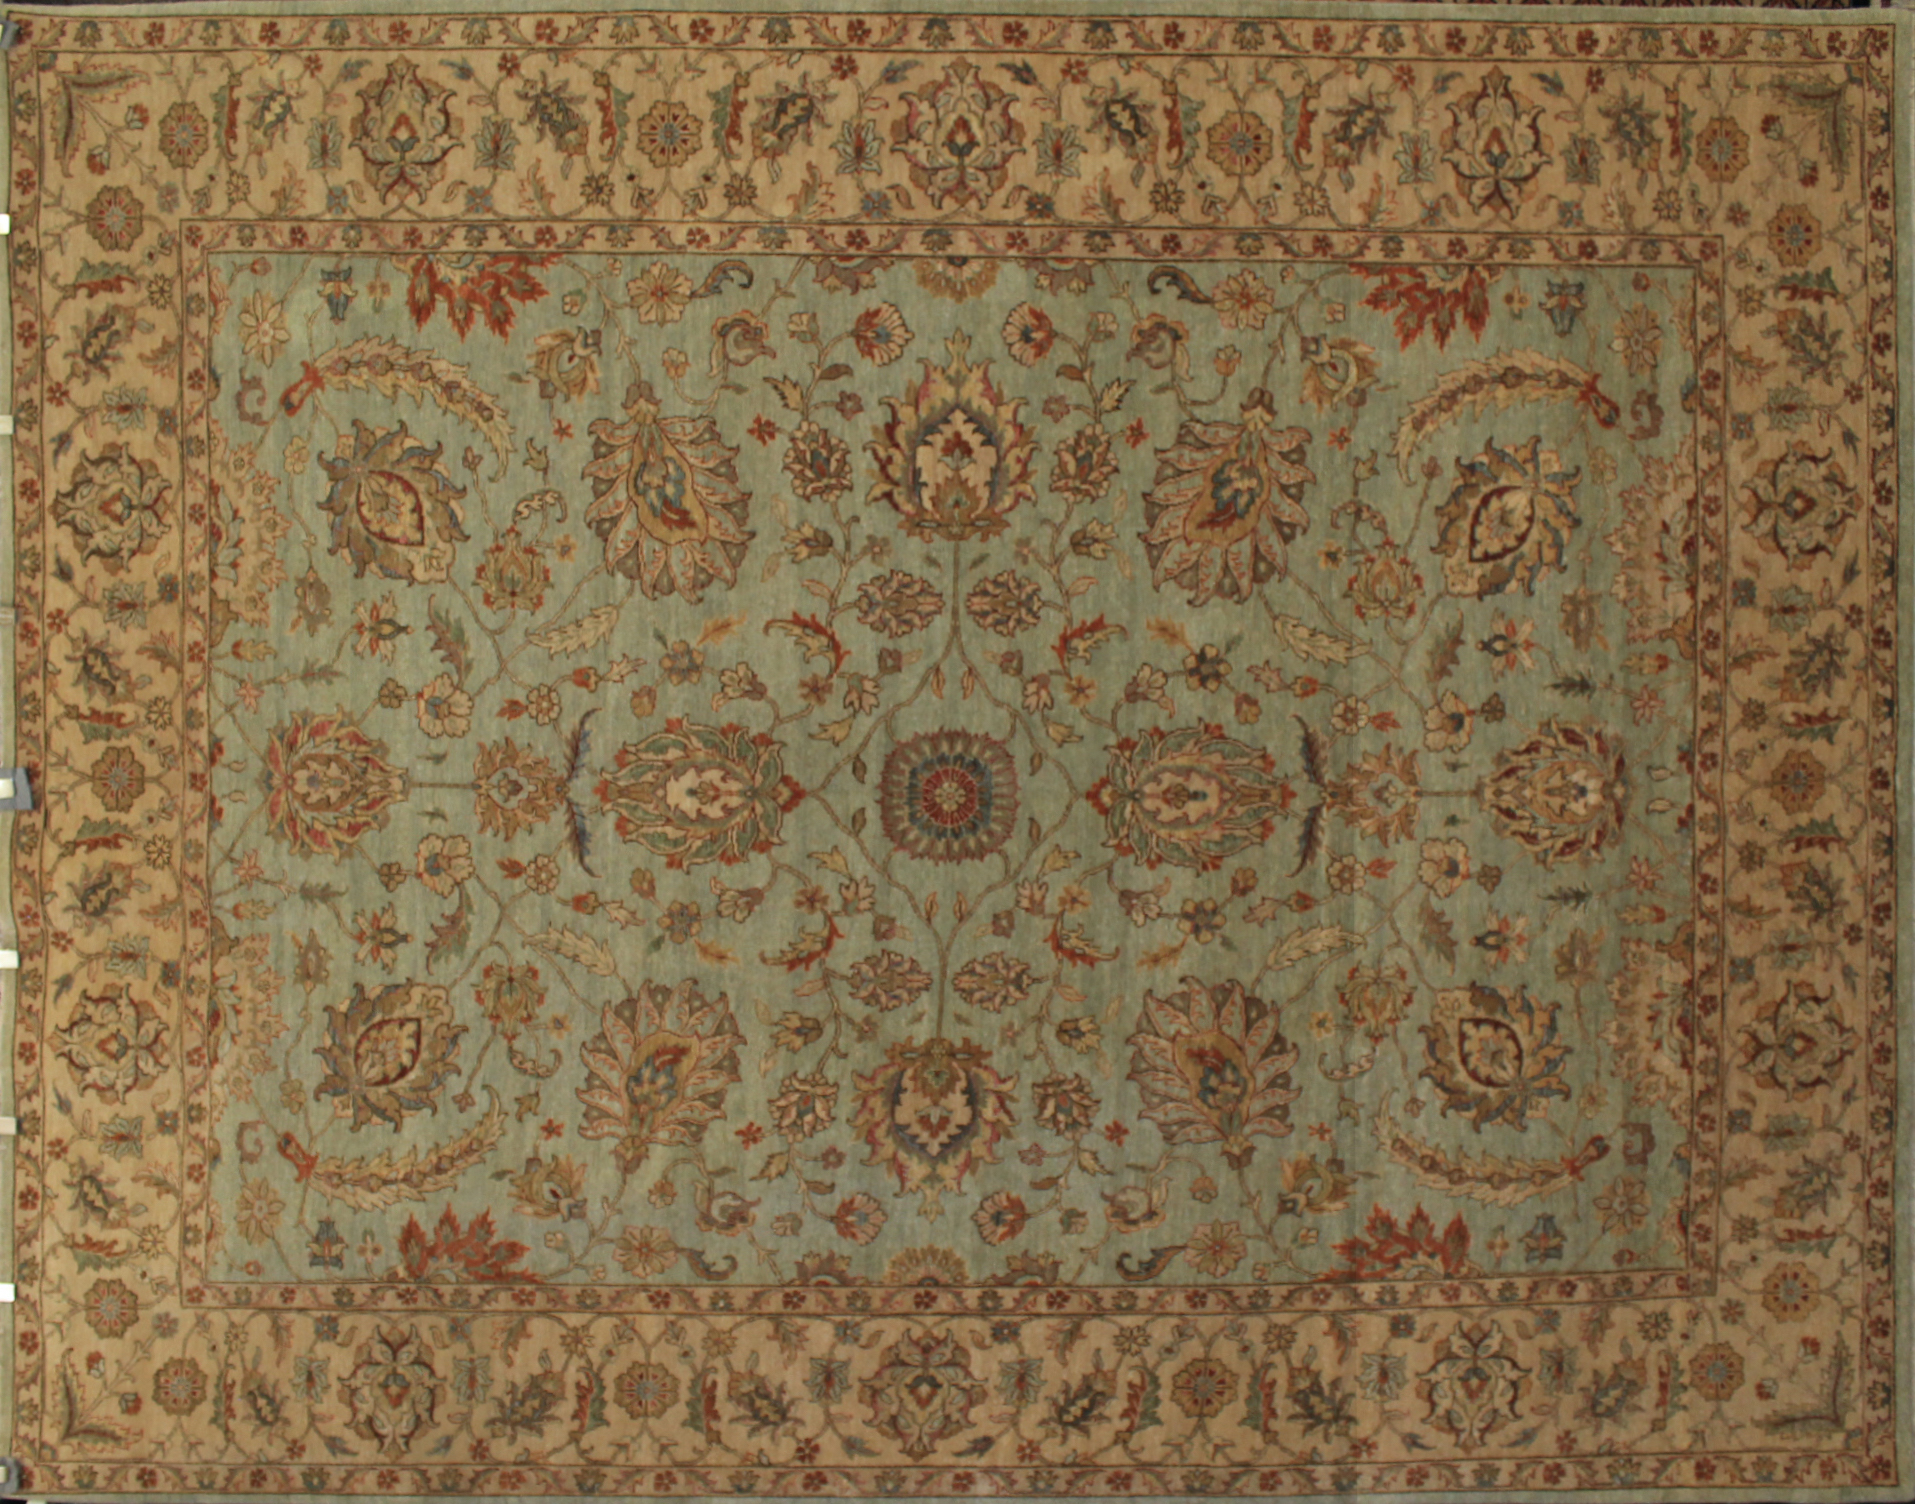 9x12 Traditional Hand Knotted Wool Area Rug - MR14591